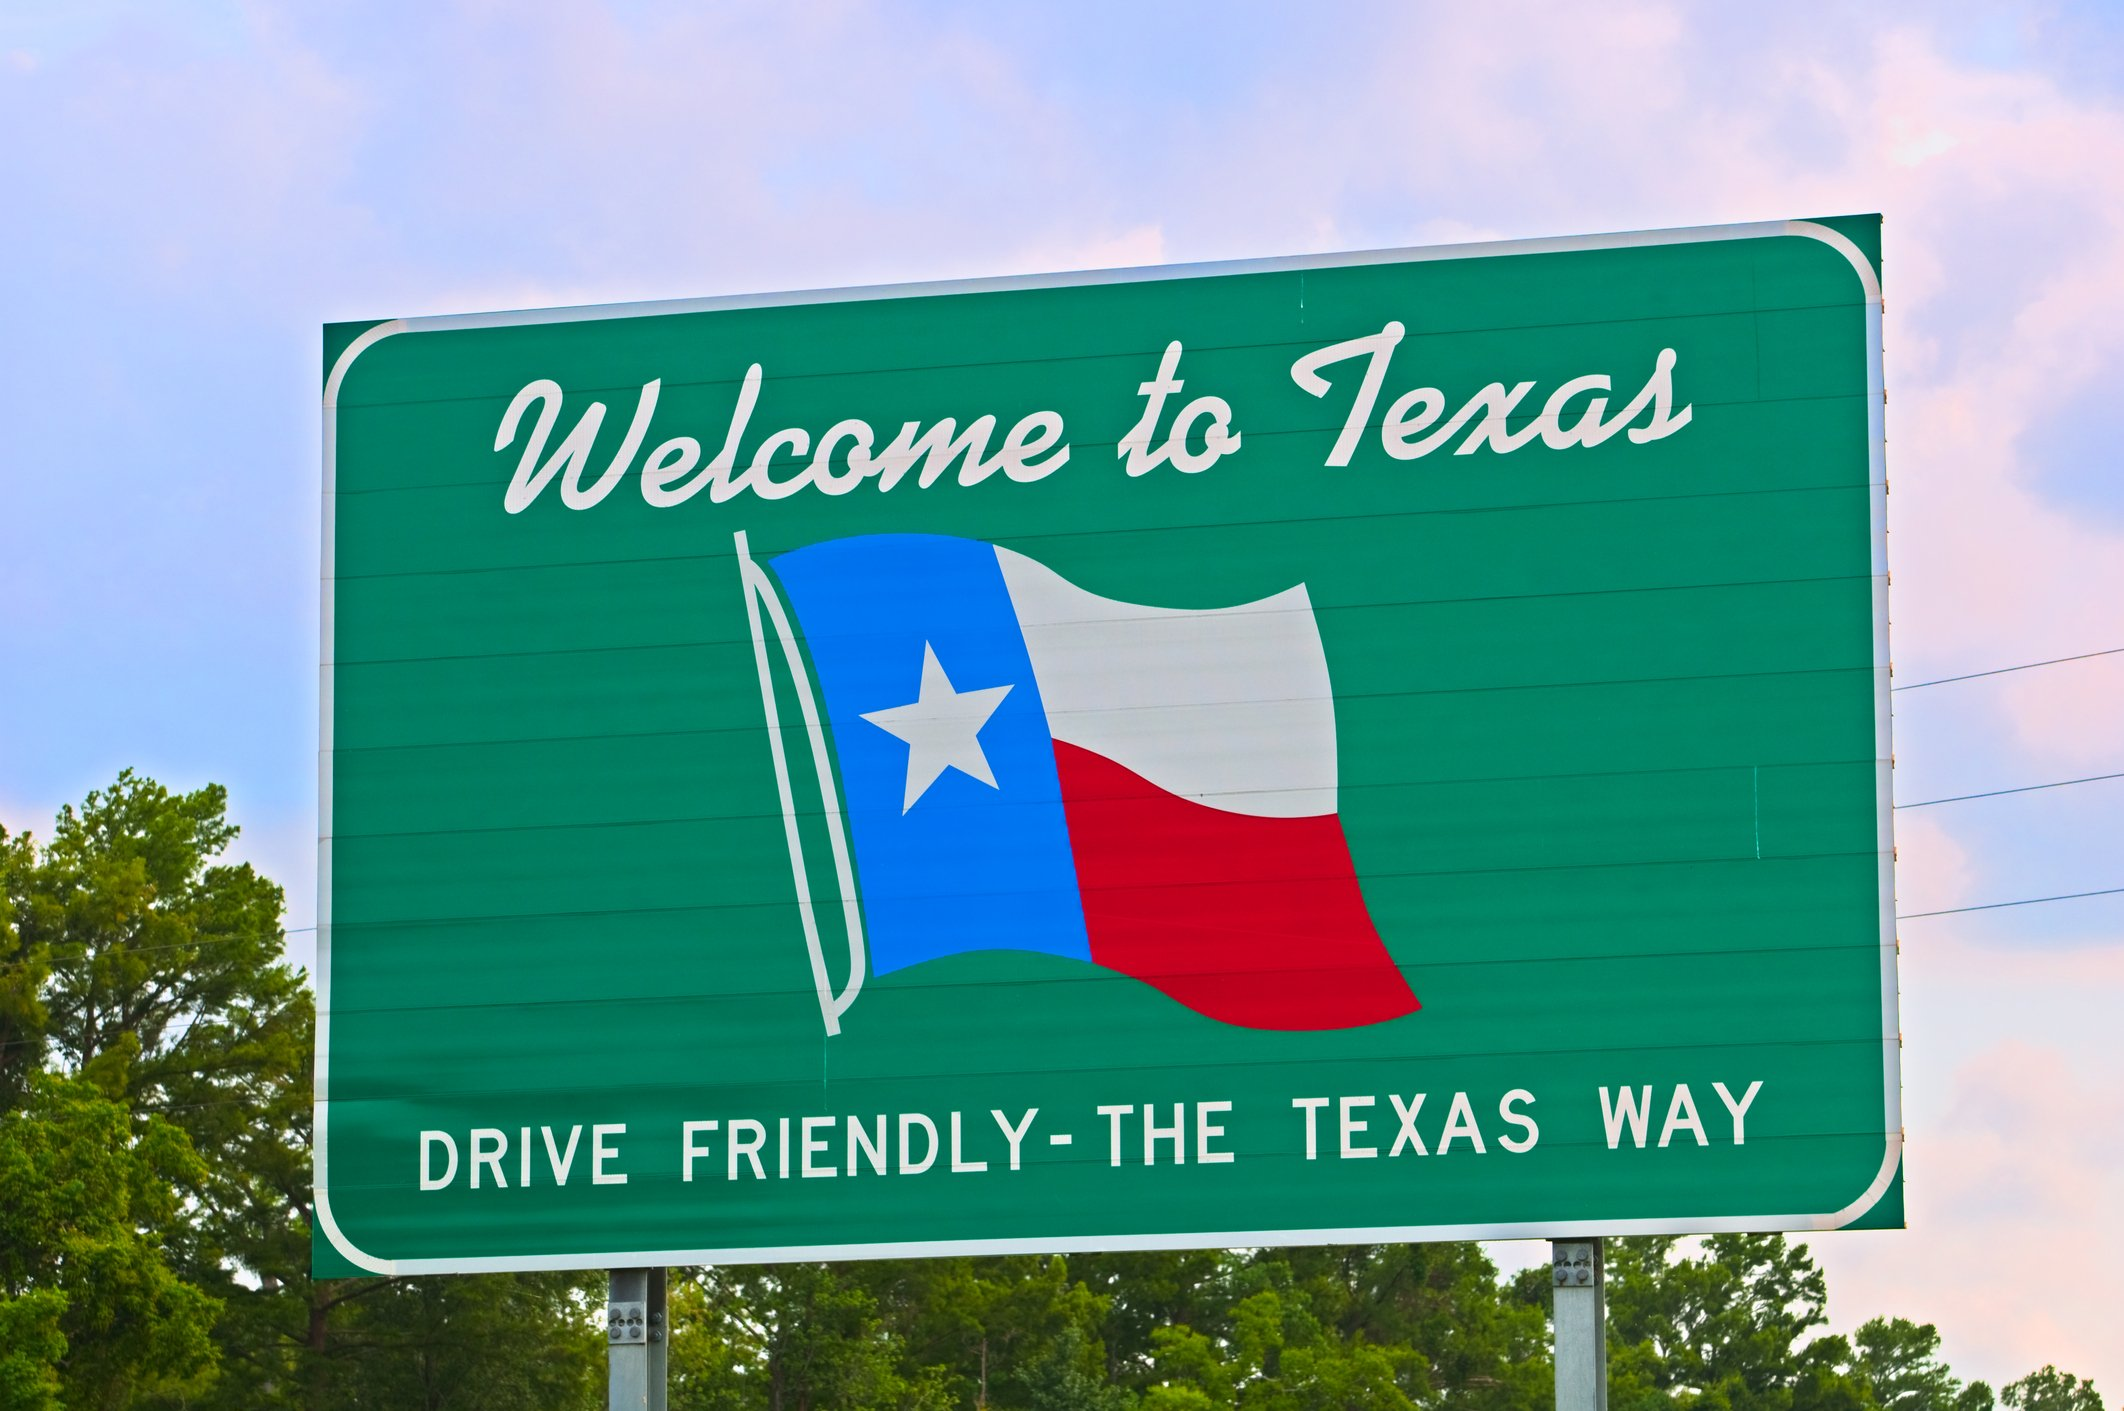 Slide 44 of 51: Texas showcases its state flag on the welcome sign, but we were expecting something a bit bigger and bolder.